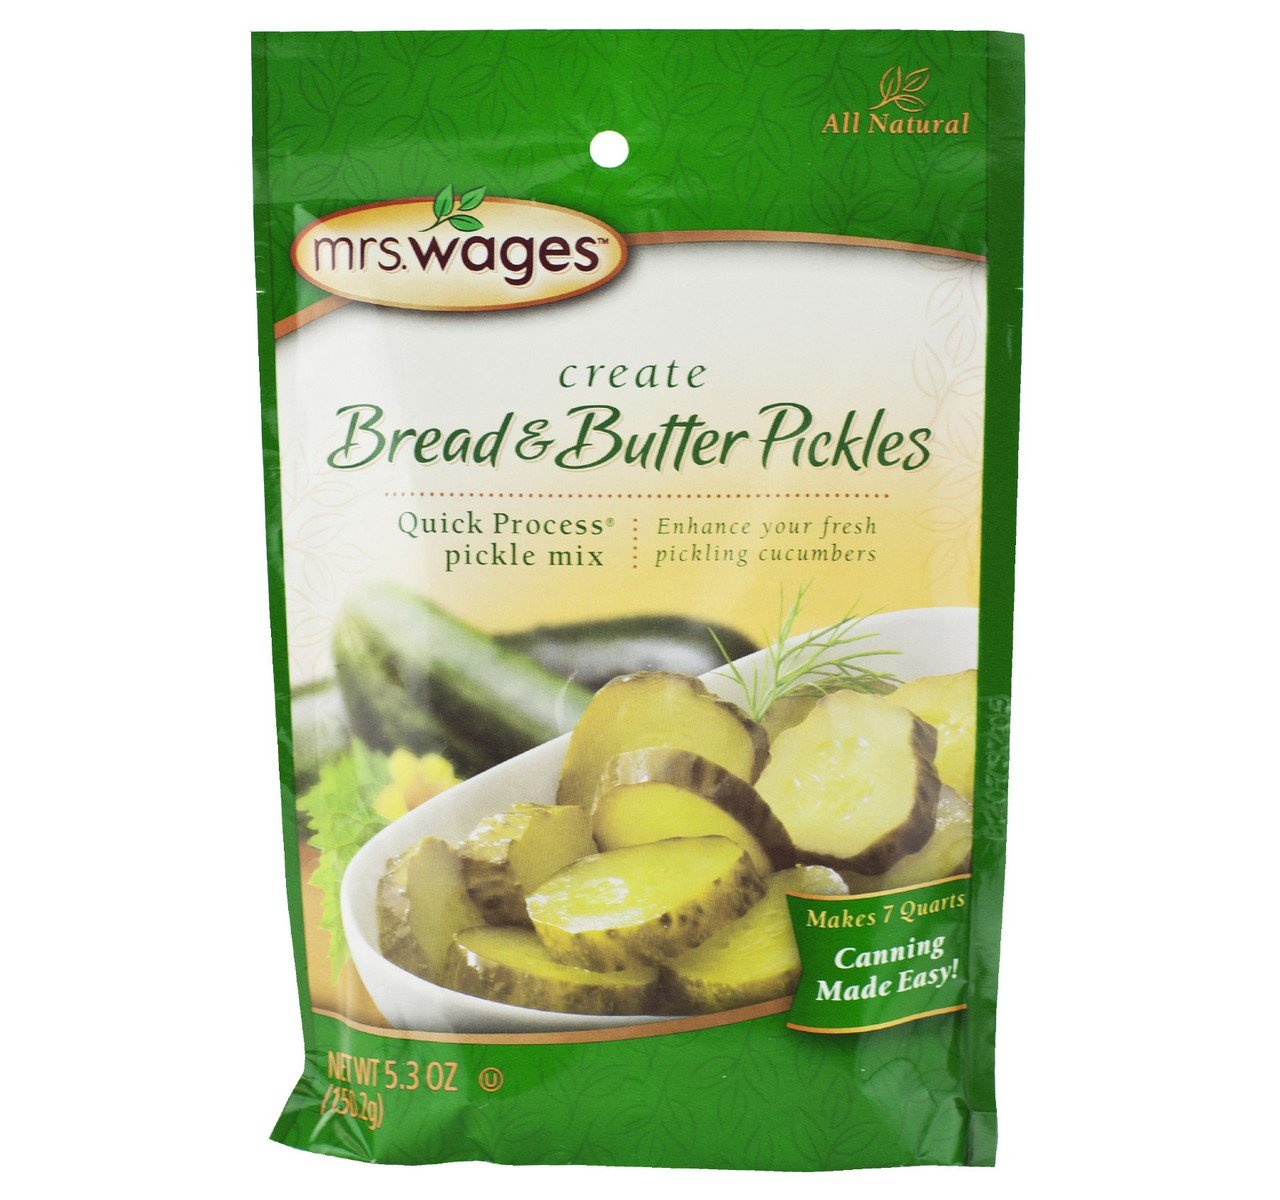 Mrs. Wages Bread & Butter Pickle Mix, 5.3 Oz. Package (Pack of 4)